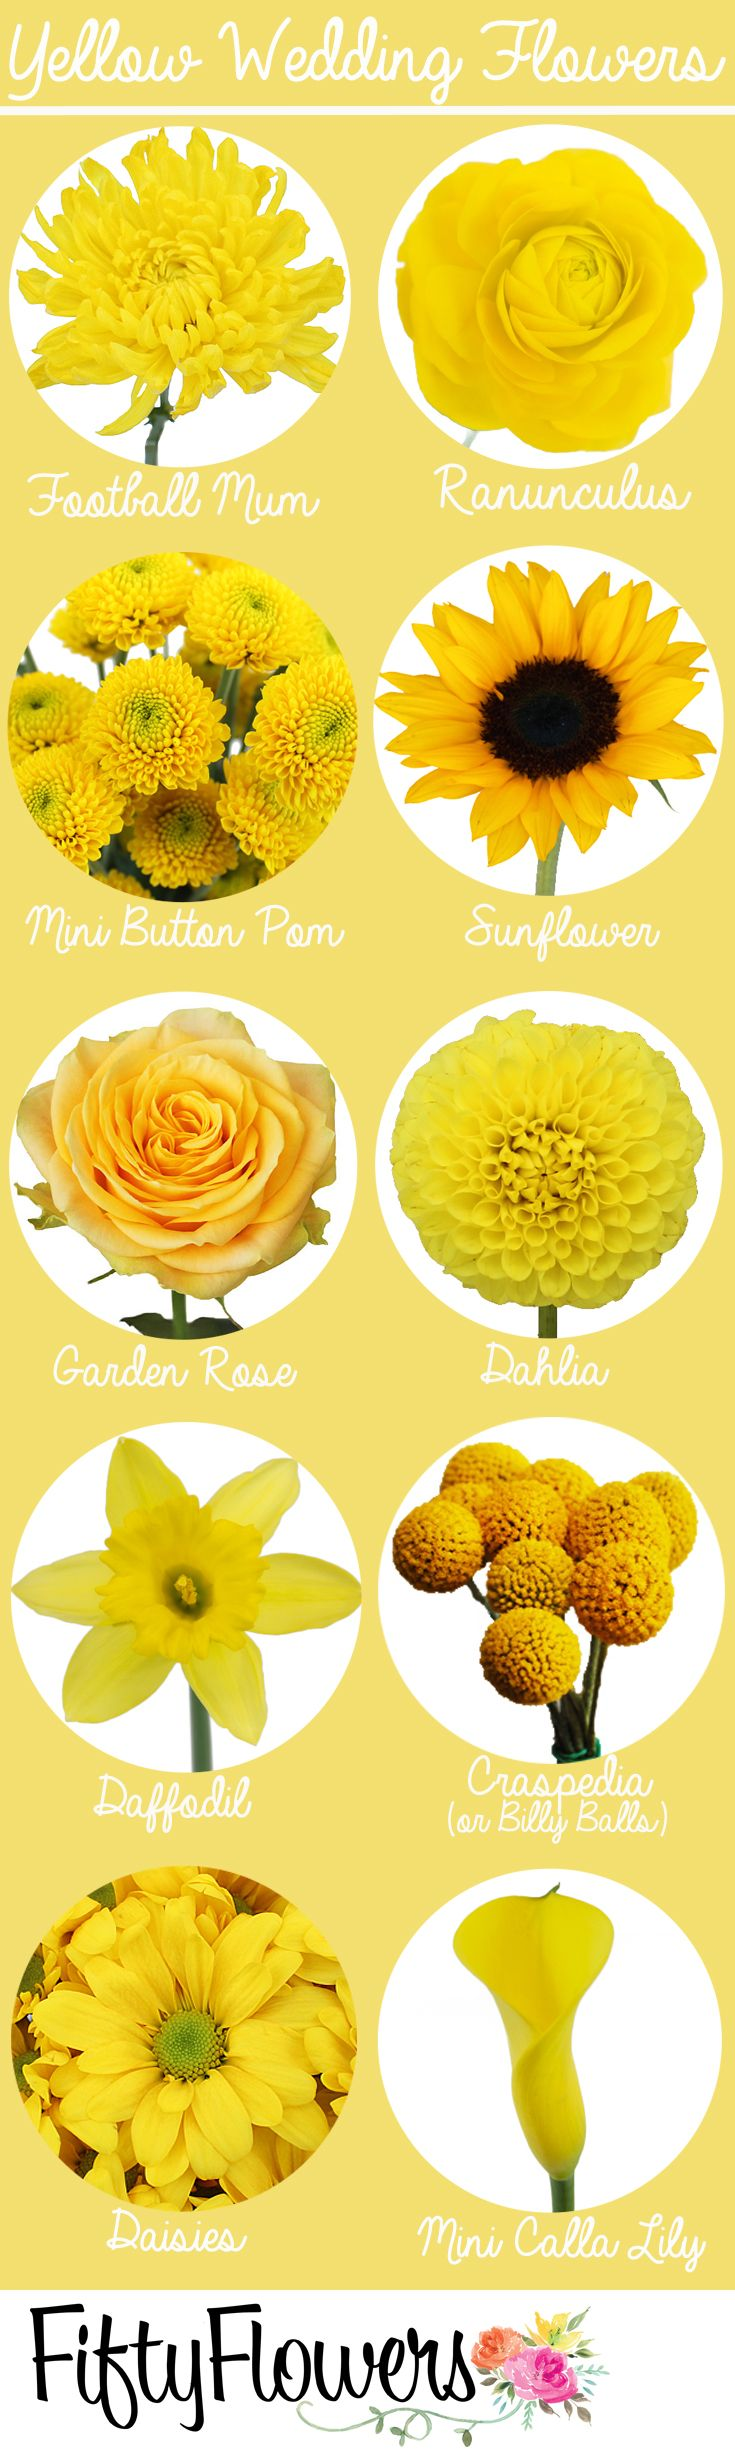 Find your sunny yellow wedding flowers at FiftyFlowerscom